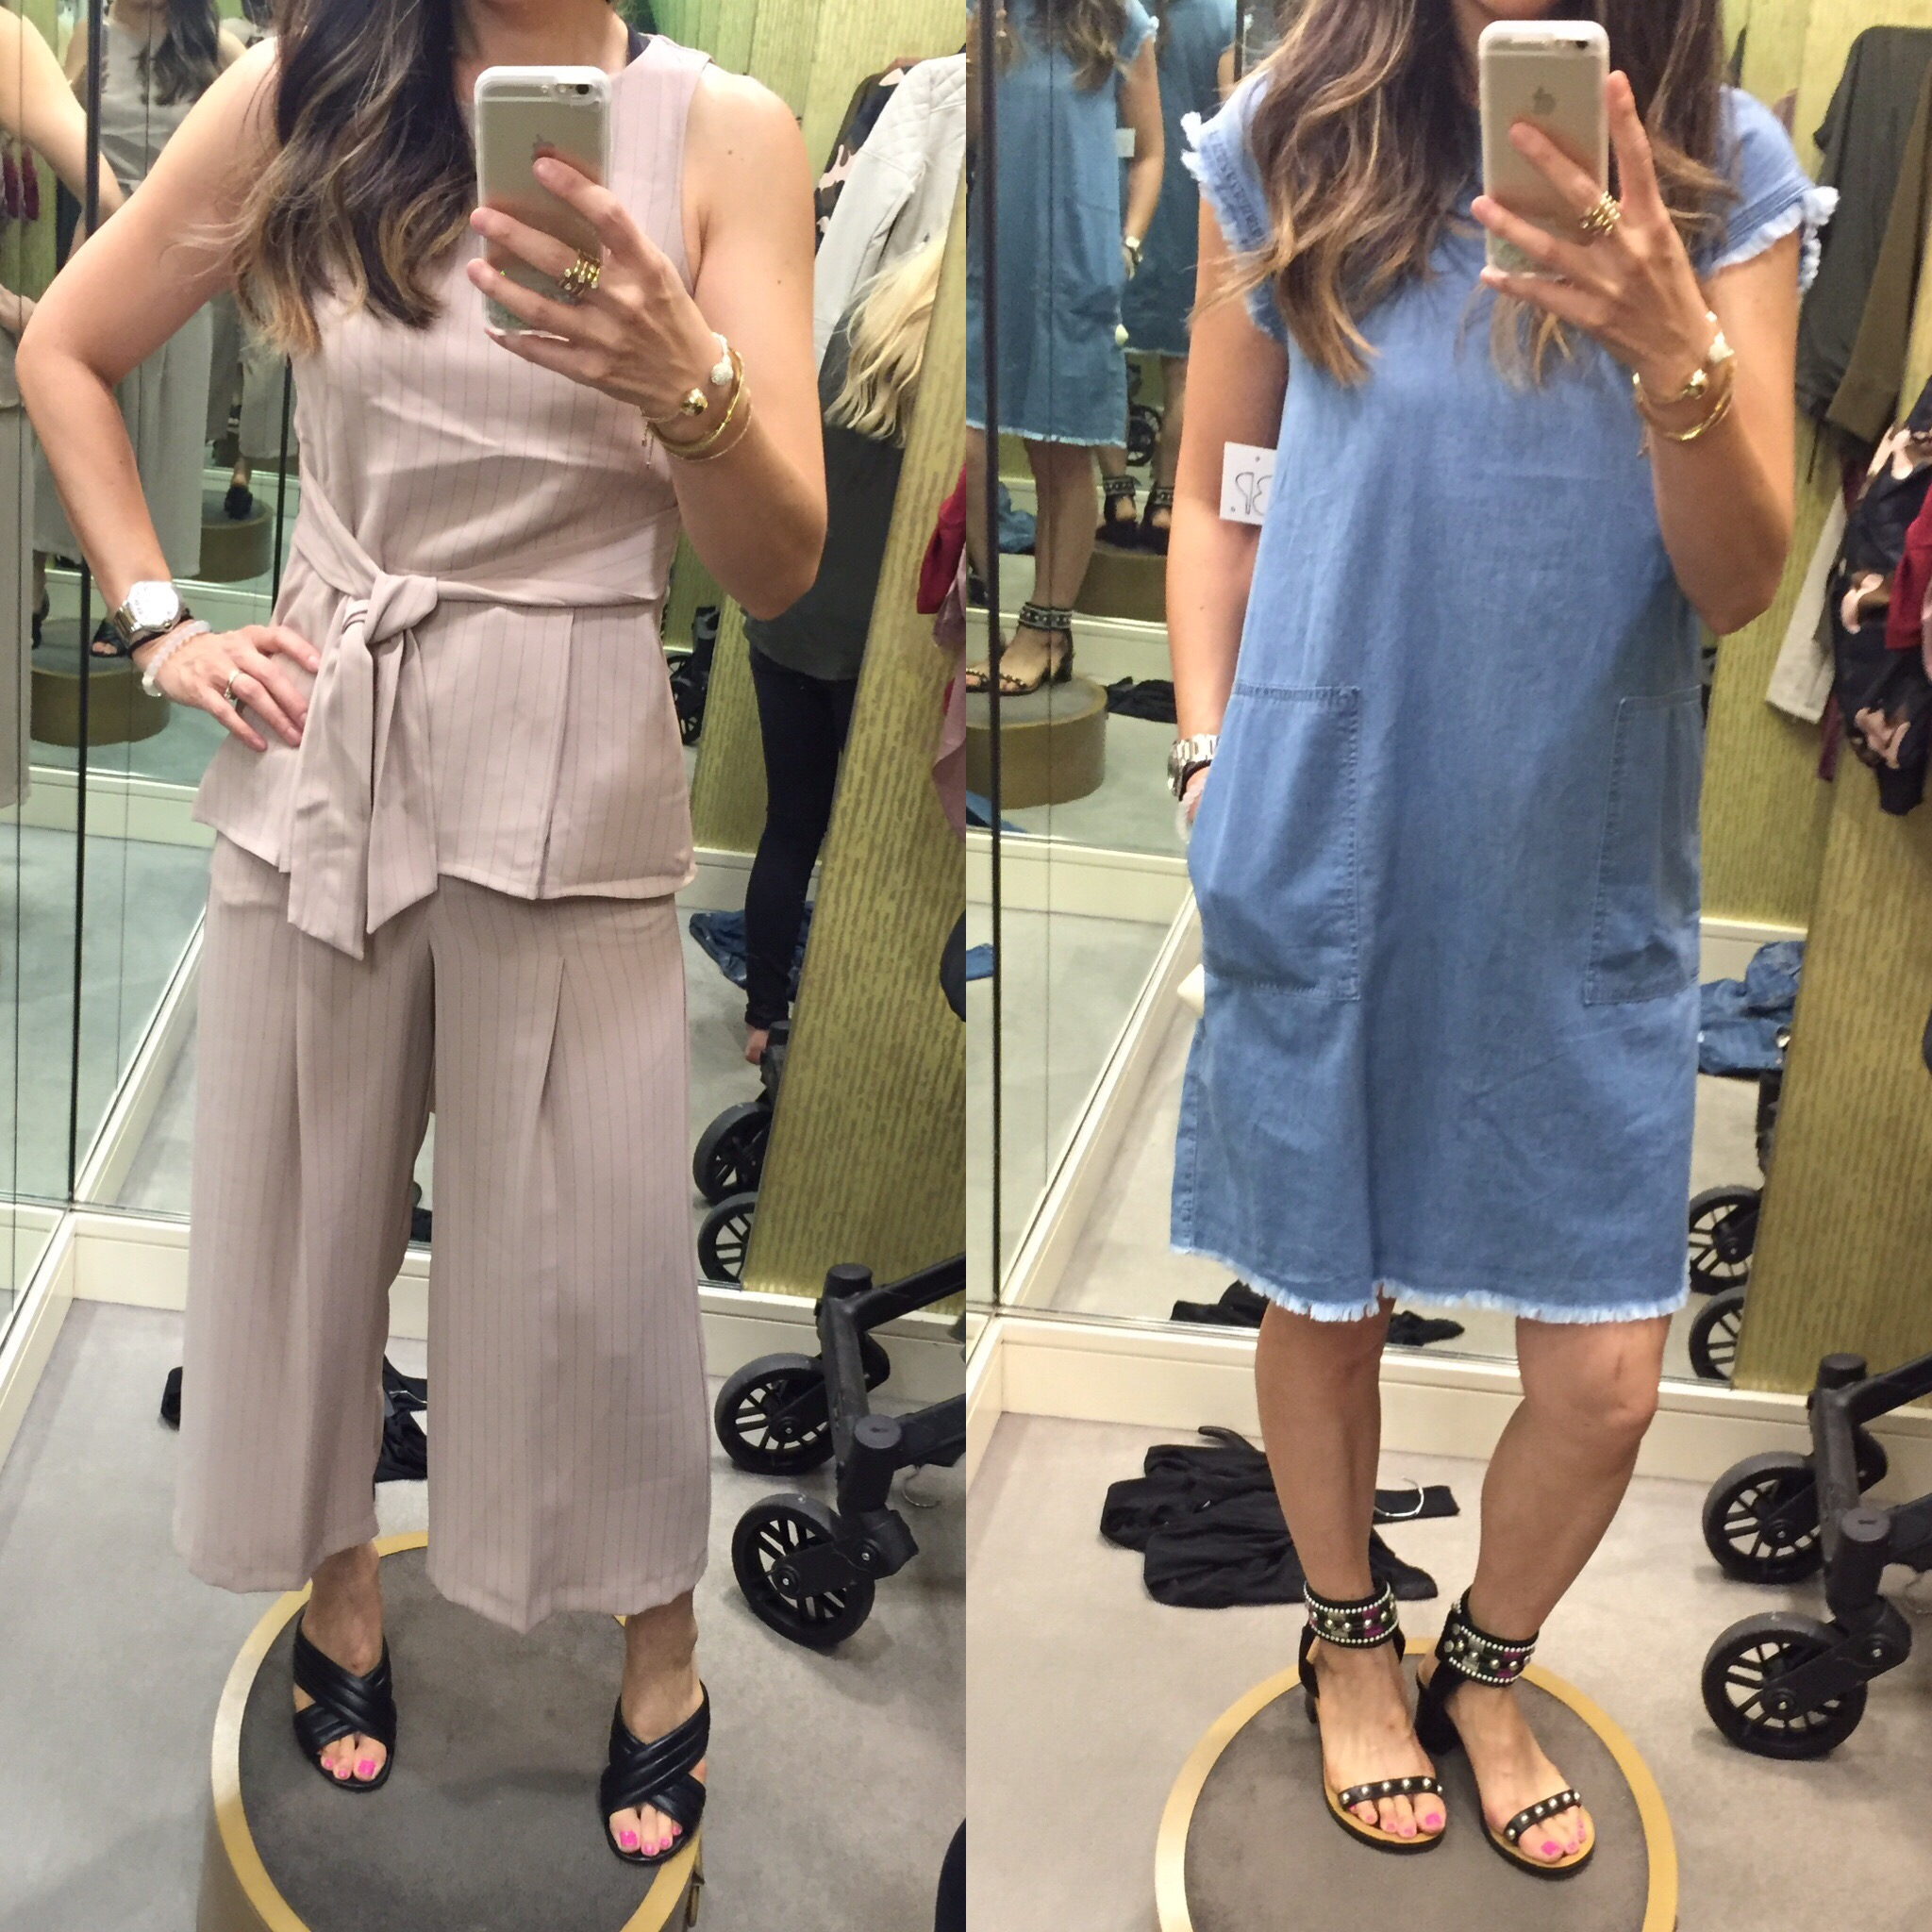 dressing room outfits nordstrom anniversary sale picks, frayed denim dress, pinstripe coords set